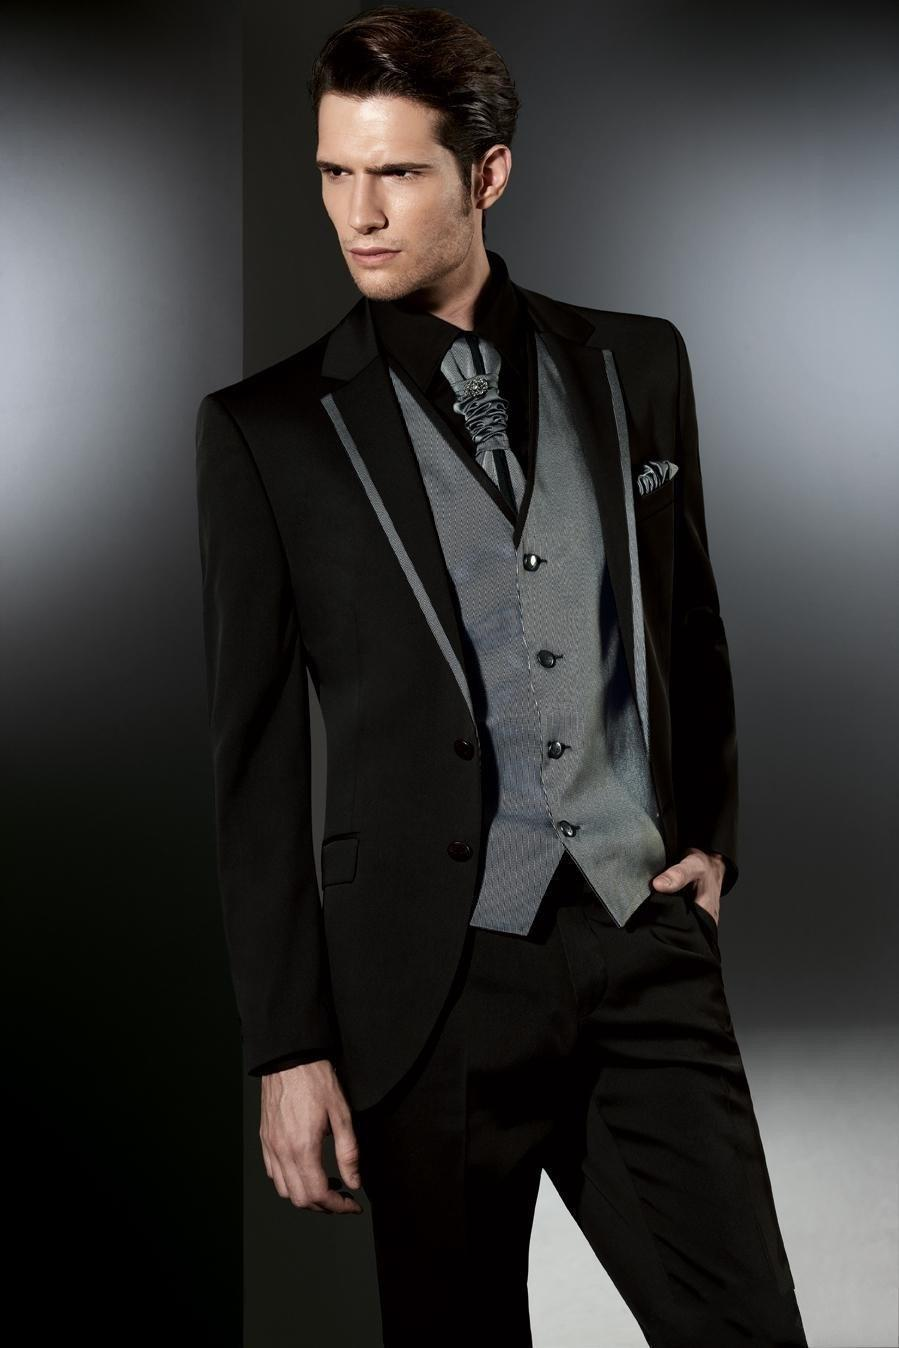 Silver Black Two Buttons Wedding Suit For Mens 2016 The Best Man ...